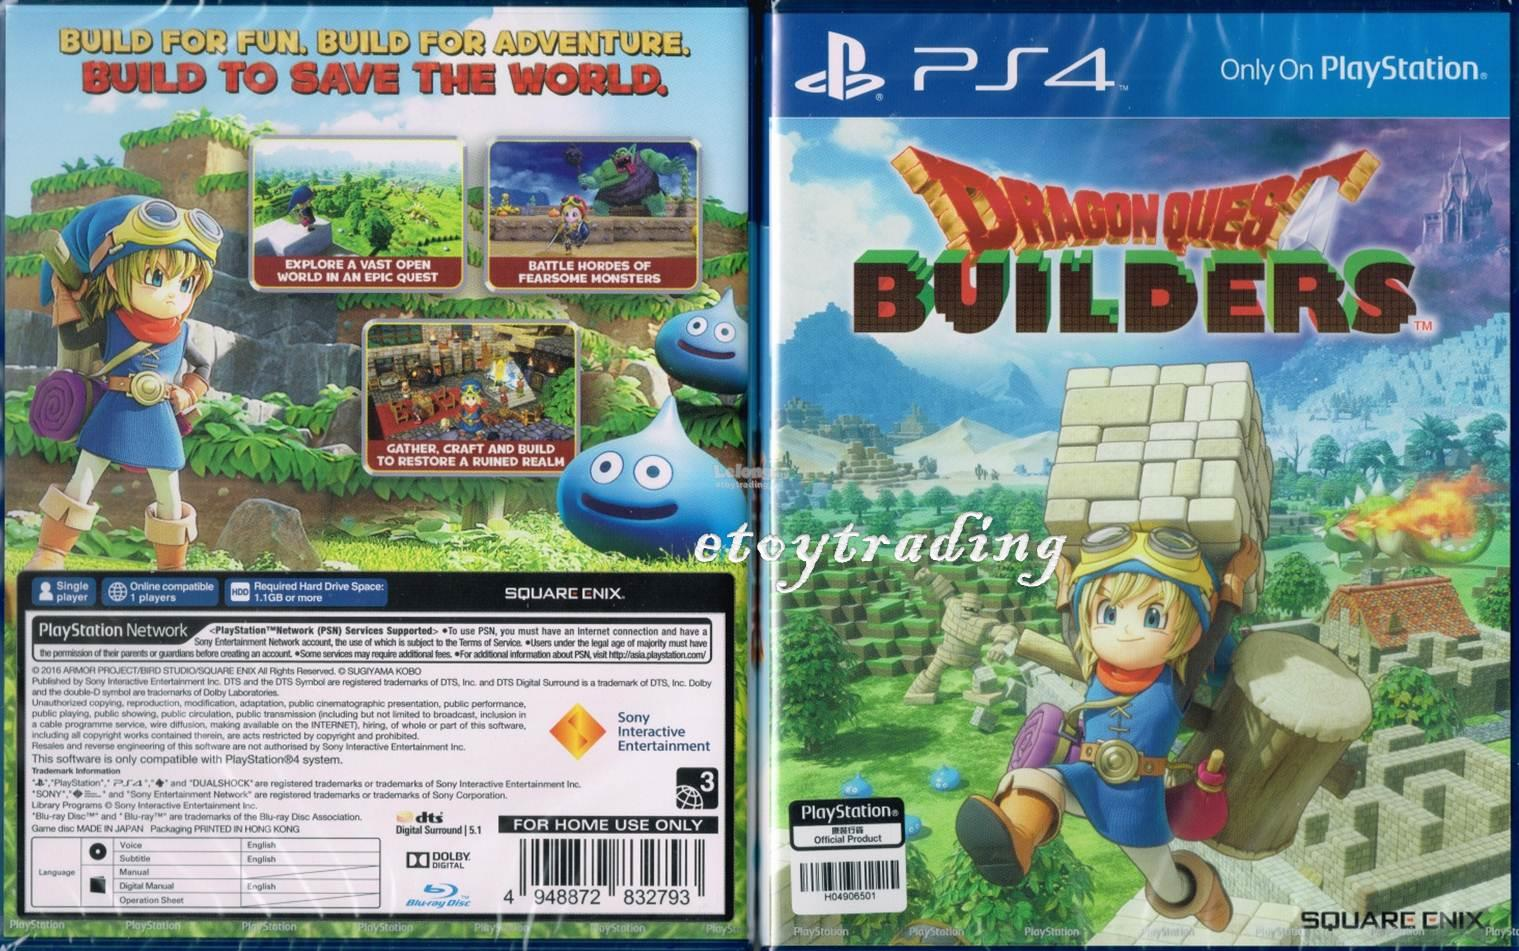 PS4 DRAGON QUEST BUILDERS R3 RM70 WHATSAPP/SMS +60102209266